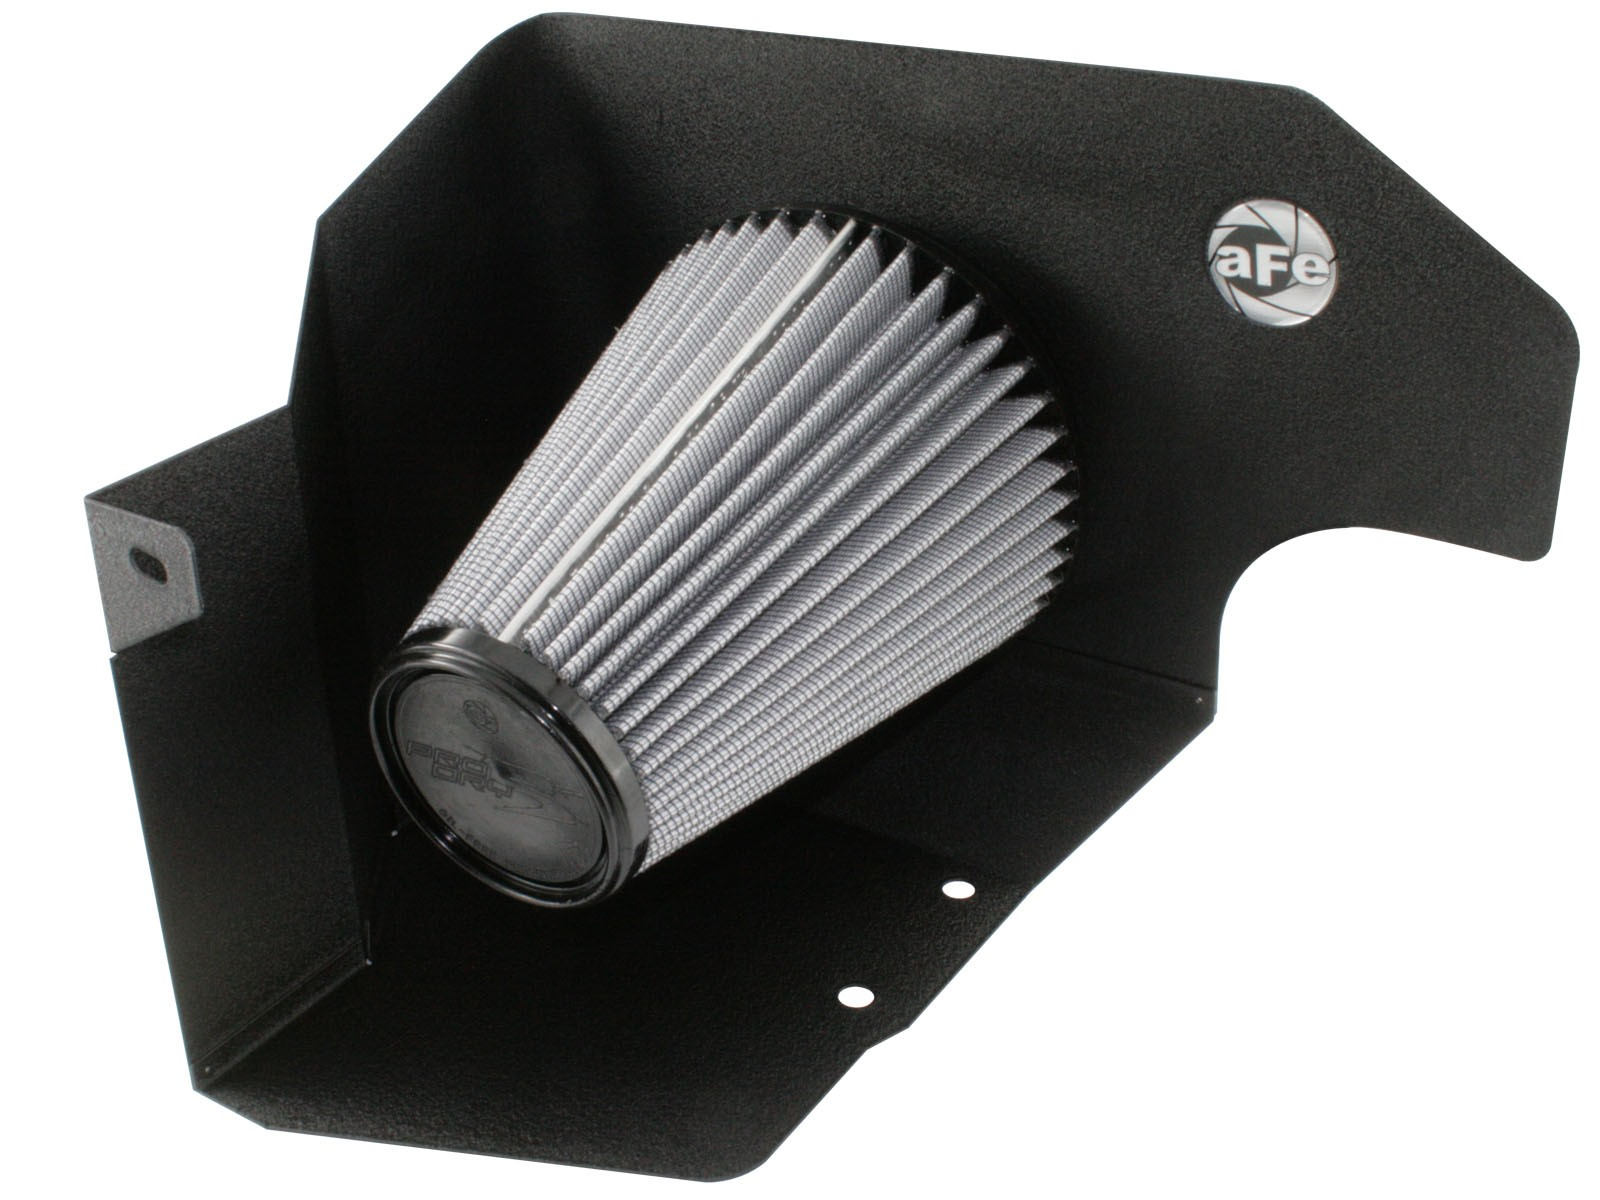 aFe POWER 51-10331 Magnum FORCE Stage-1 Pro DRY S Cold Air Intake System